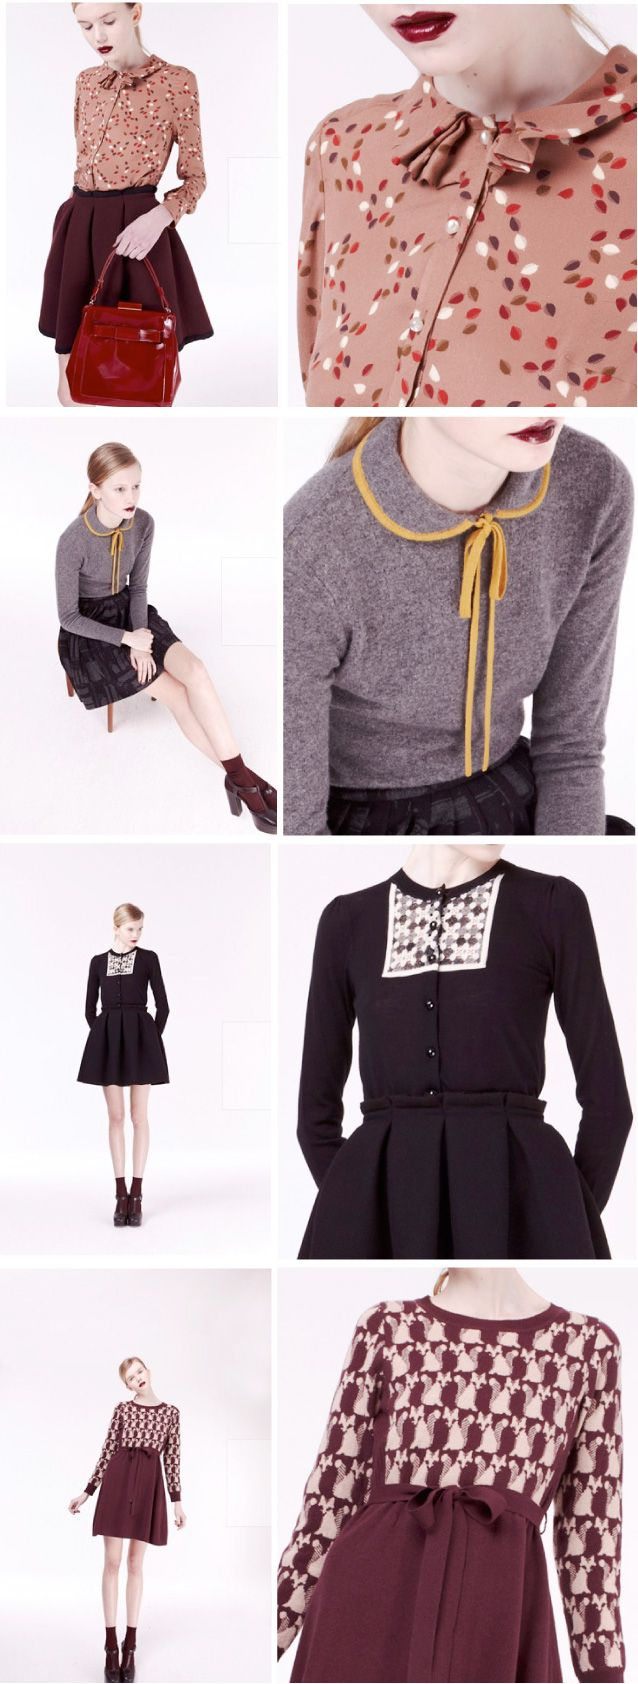 Orla Kiely Autumn/Winter 2012-13 oh, the collars